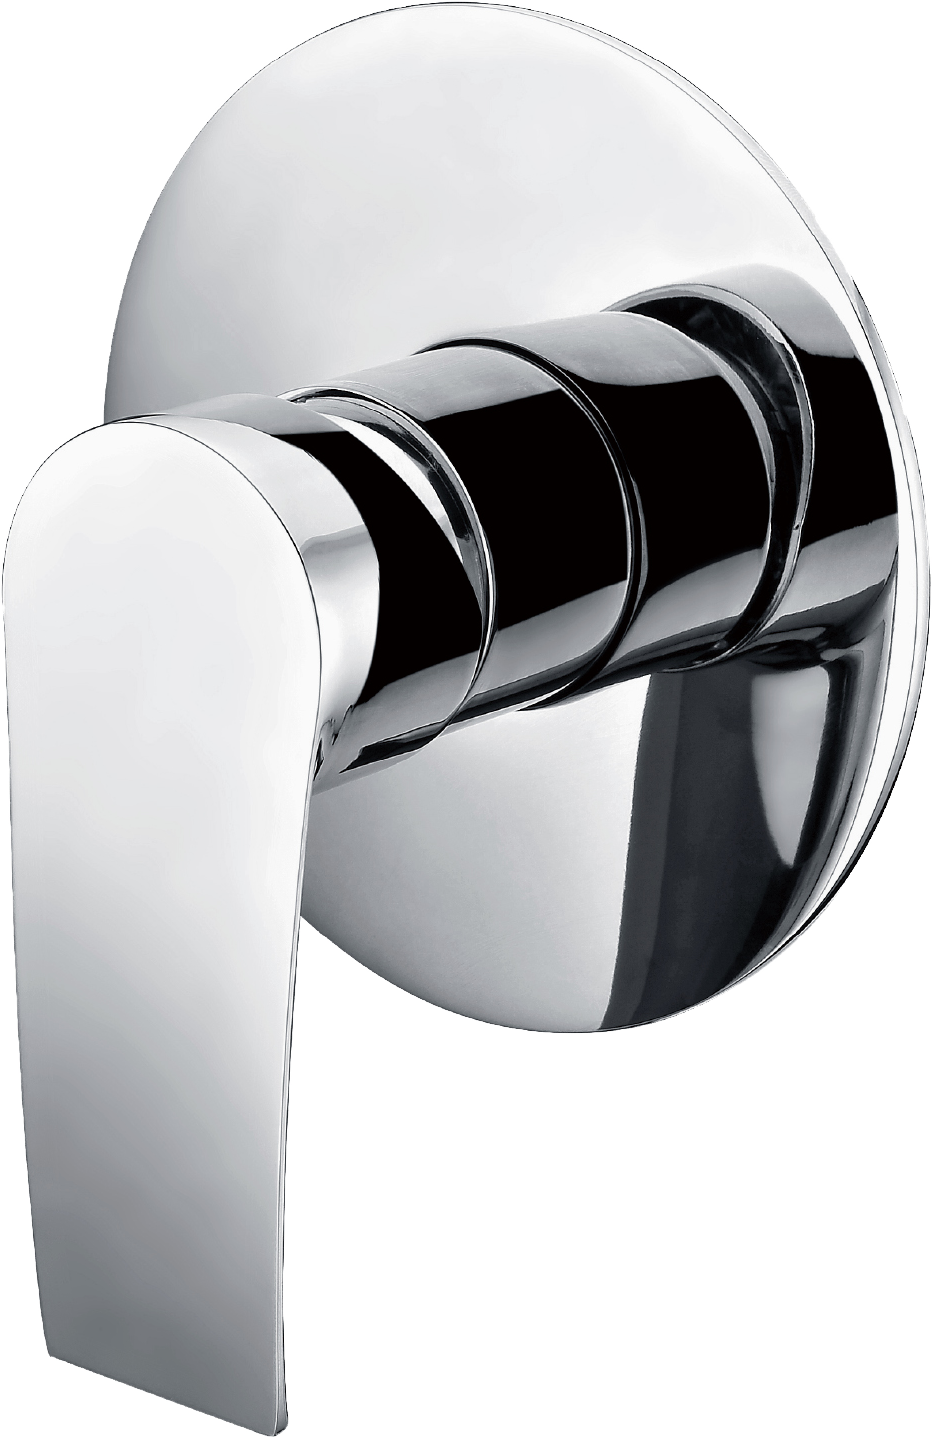 Contour Shower Mixer